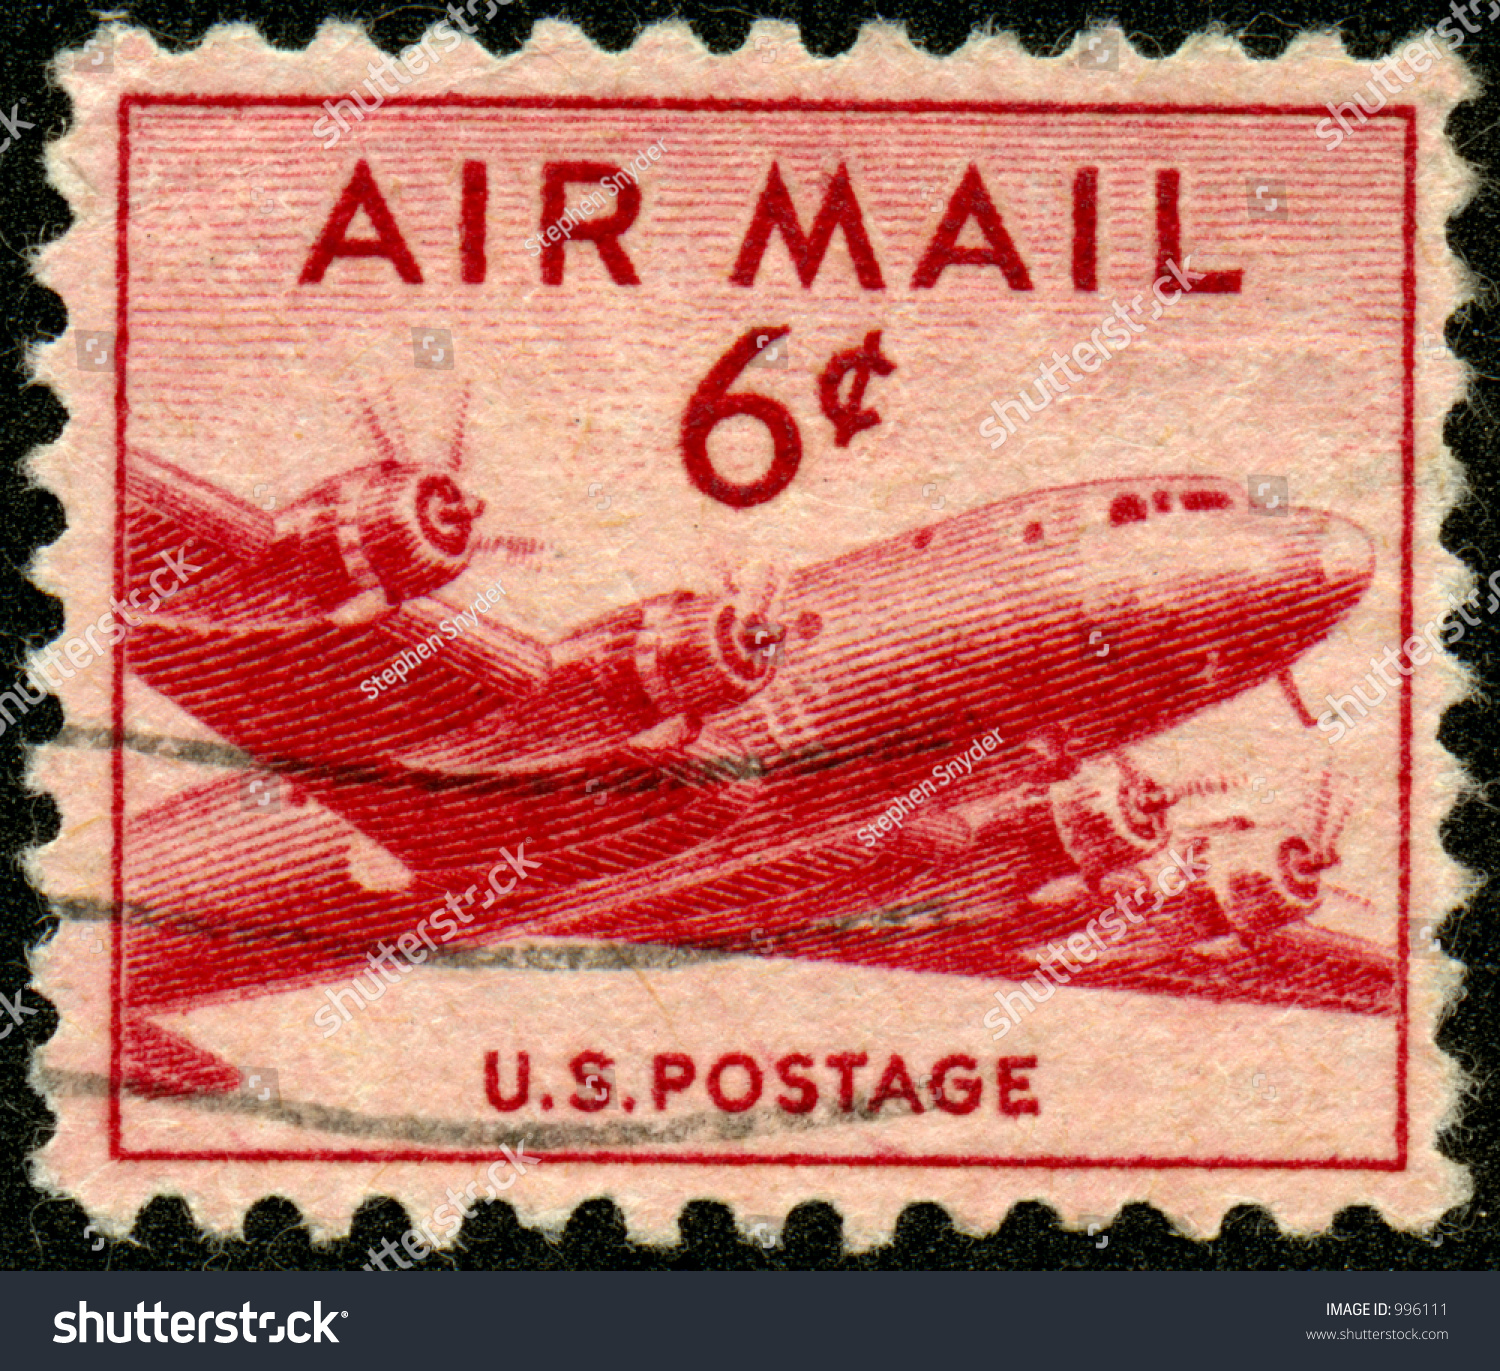 Us Postage To Send A Letter